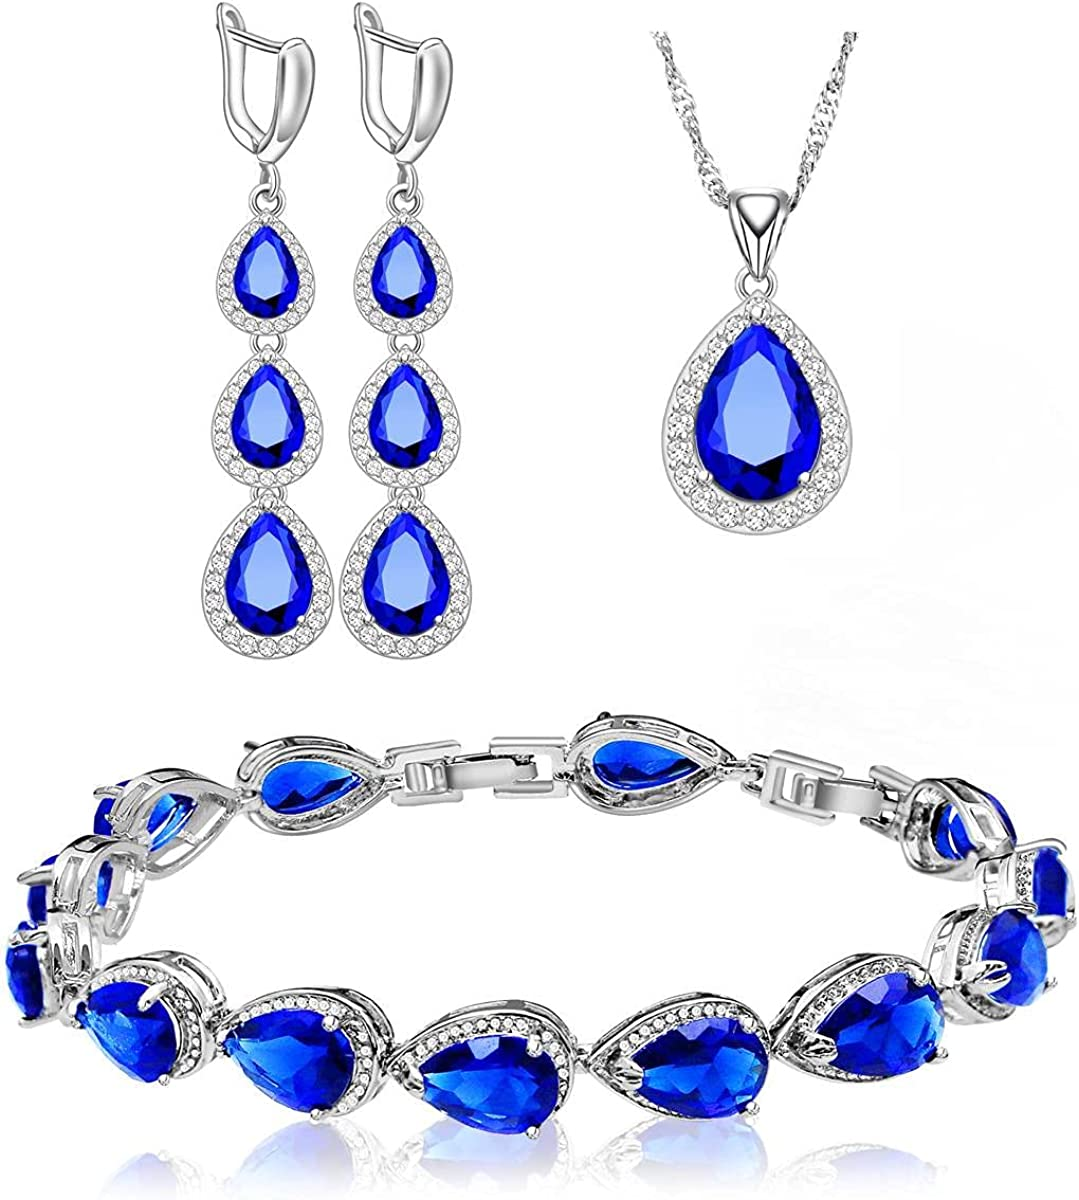 LMXXVJ Necklace Long Earrings Bracelet Set, White Gold Plated Created Blue Sapphire Jewelry Set Wedding Party Gift Jewelry for Women Bridal Bridesmaid